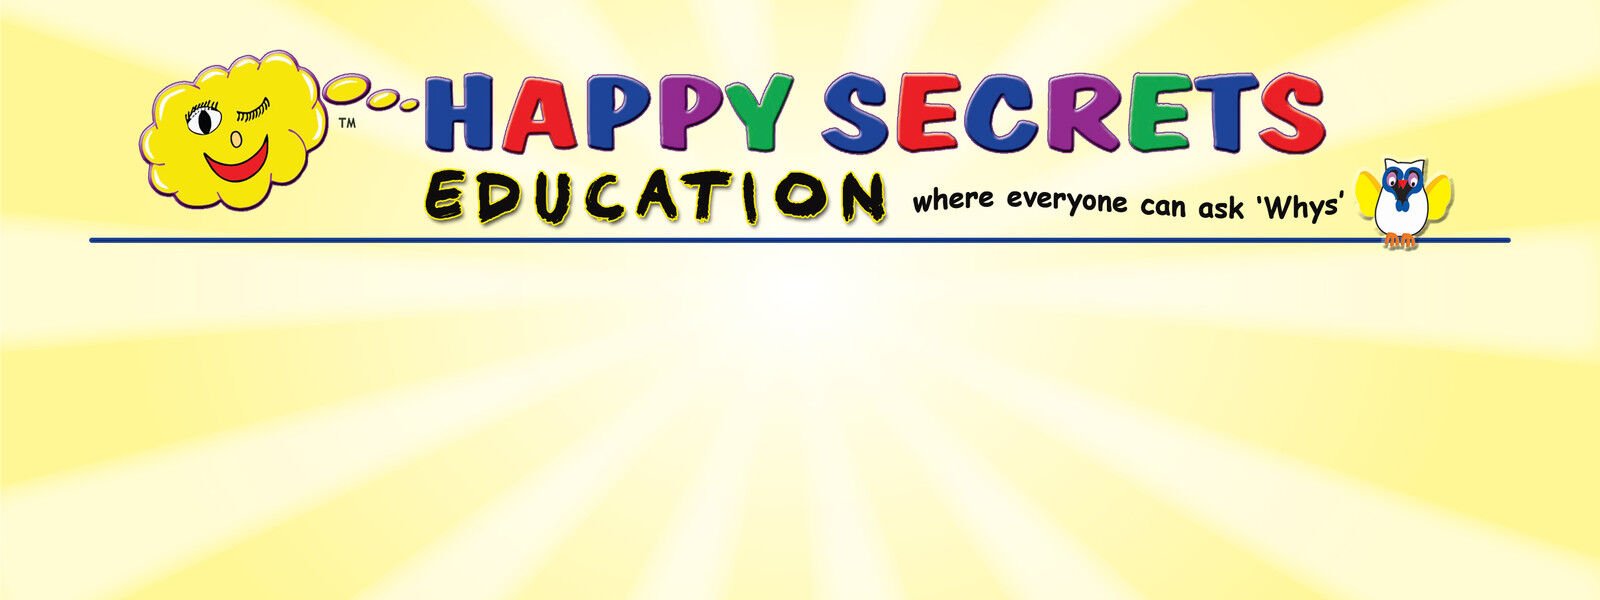 Happy Secrets Education